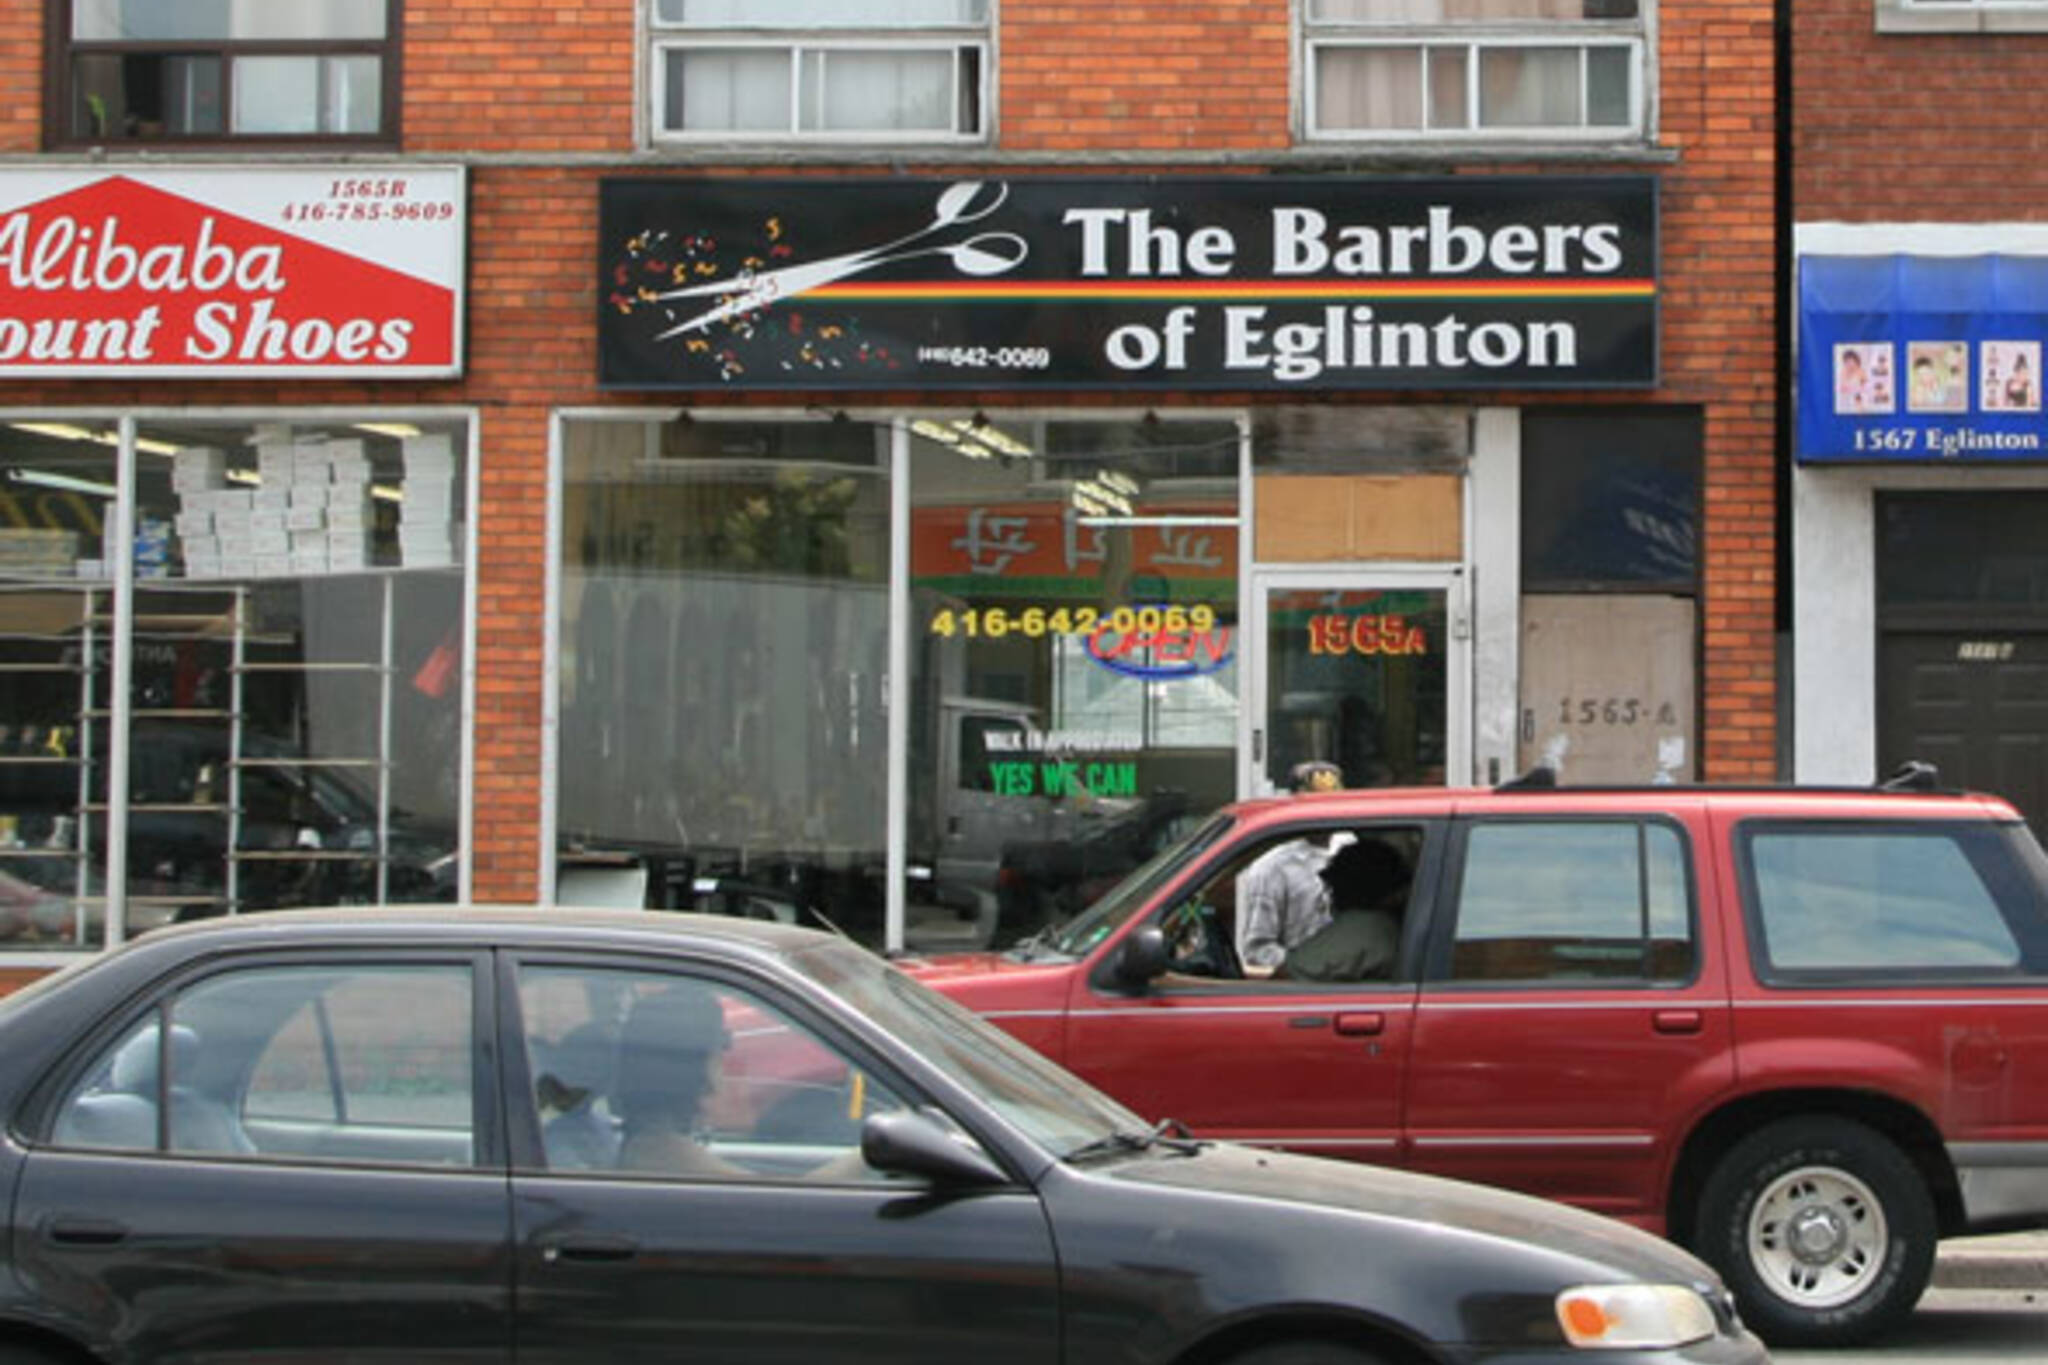 Barbers of Eglinton